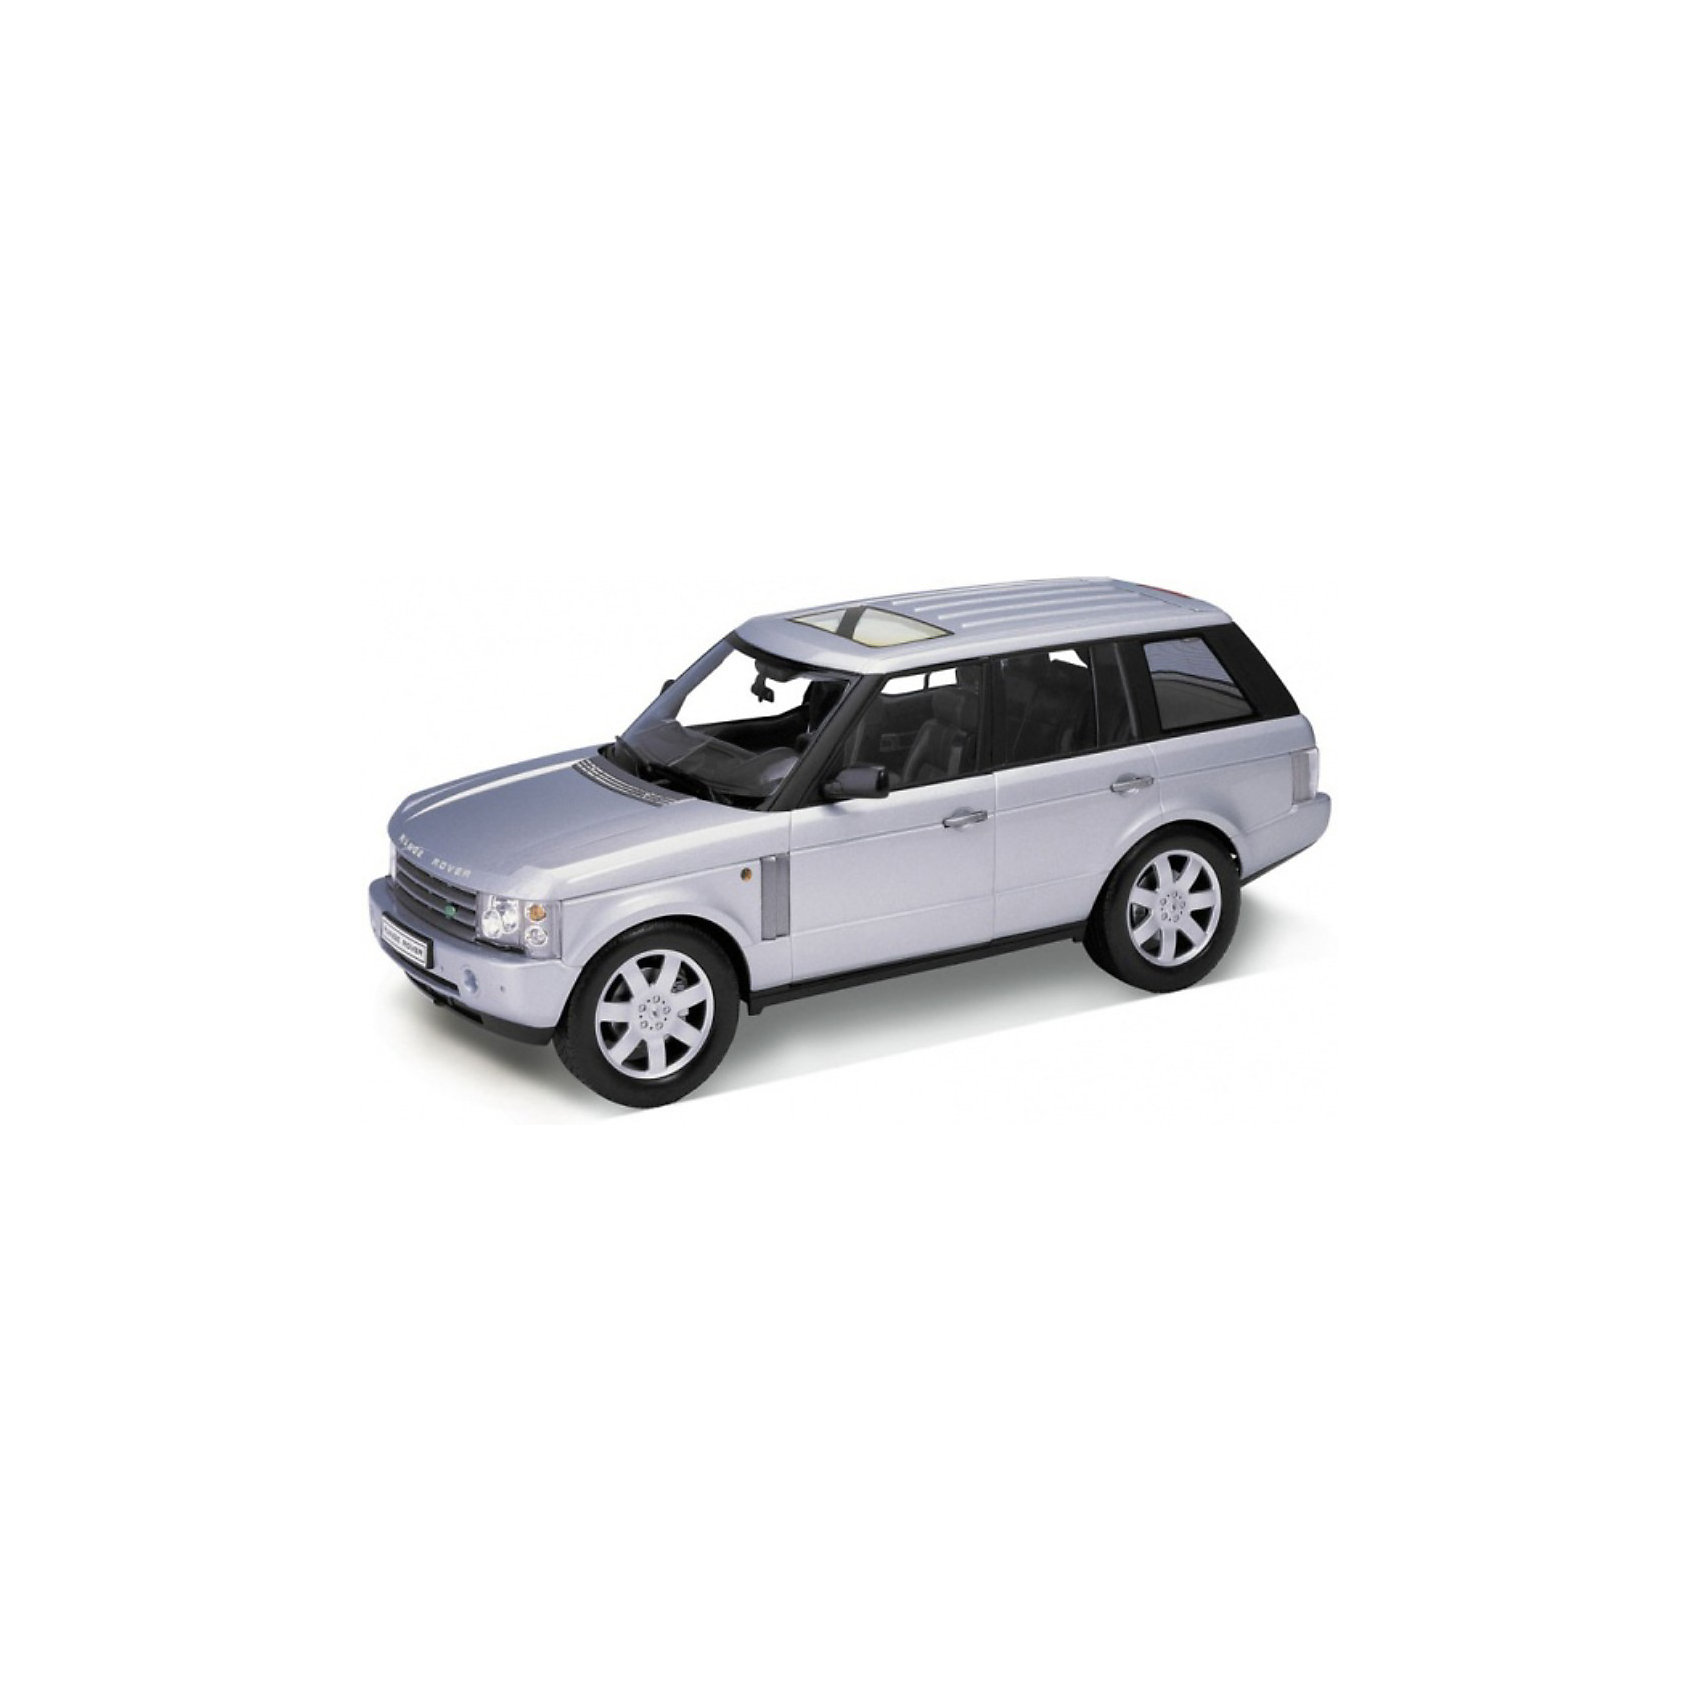 welly vw golf v 1 18 велли welly Welly Модель машины 1:18 LAND ROVER RANGE ROVER., Welly